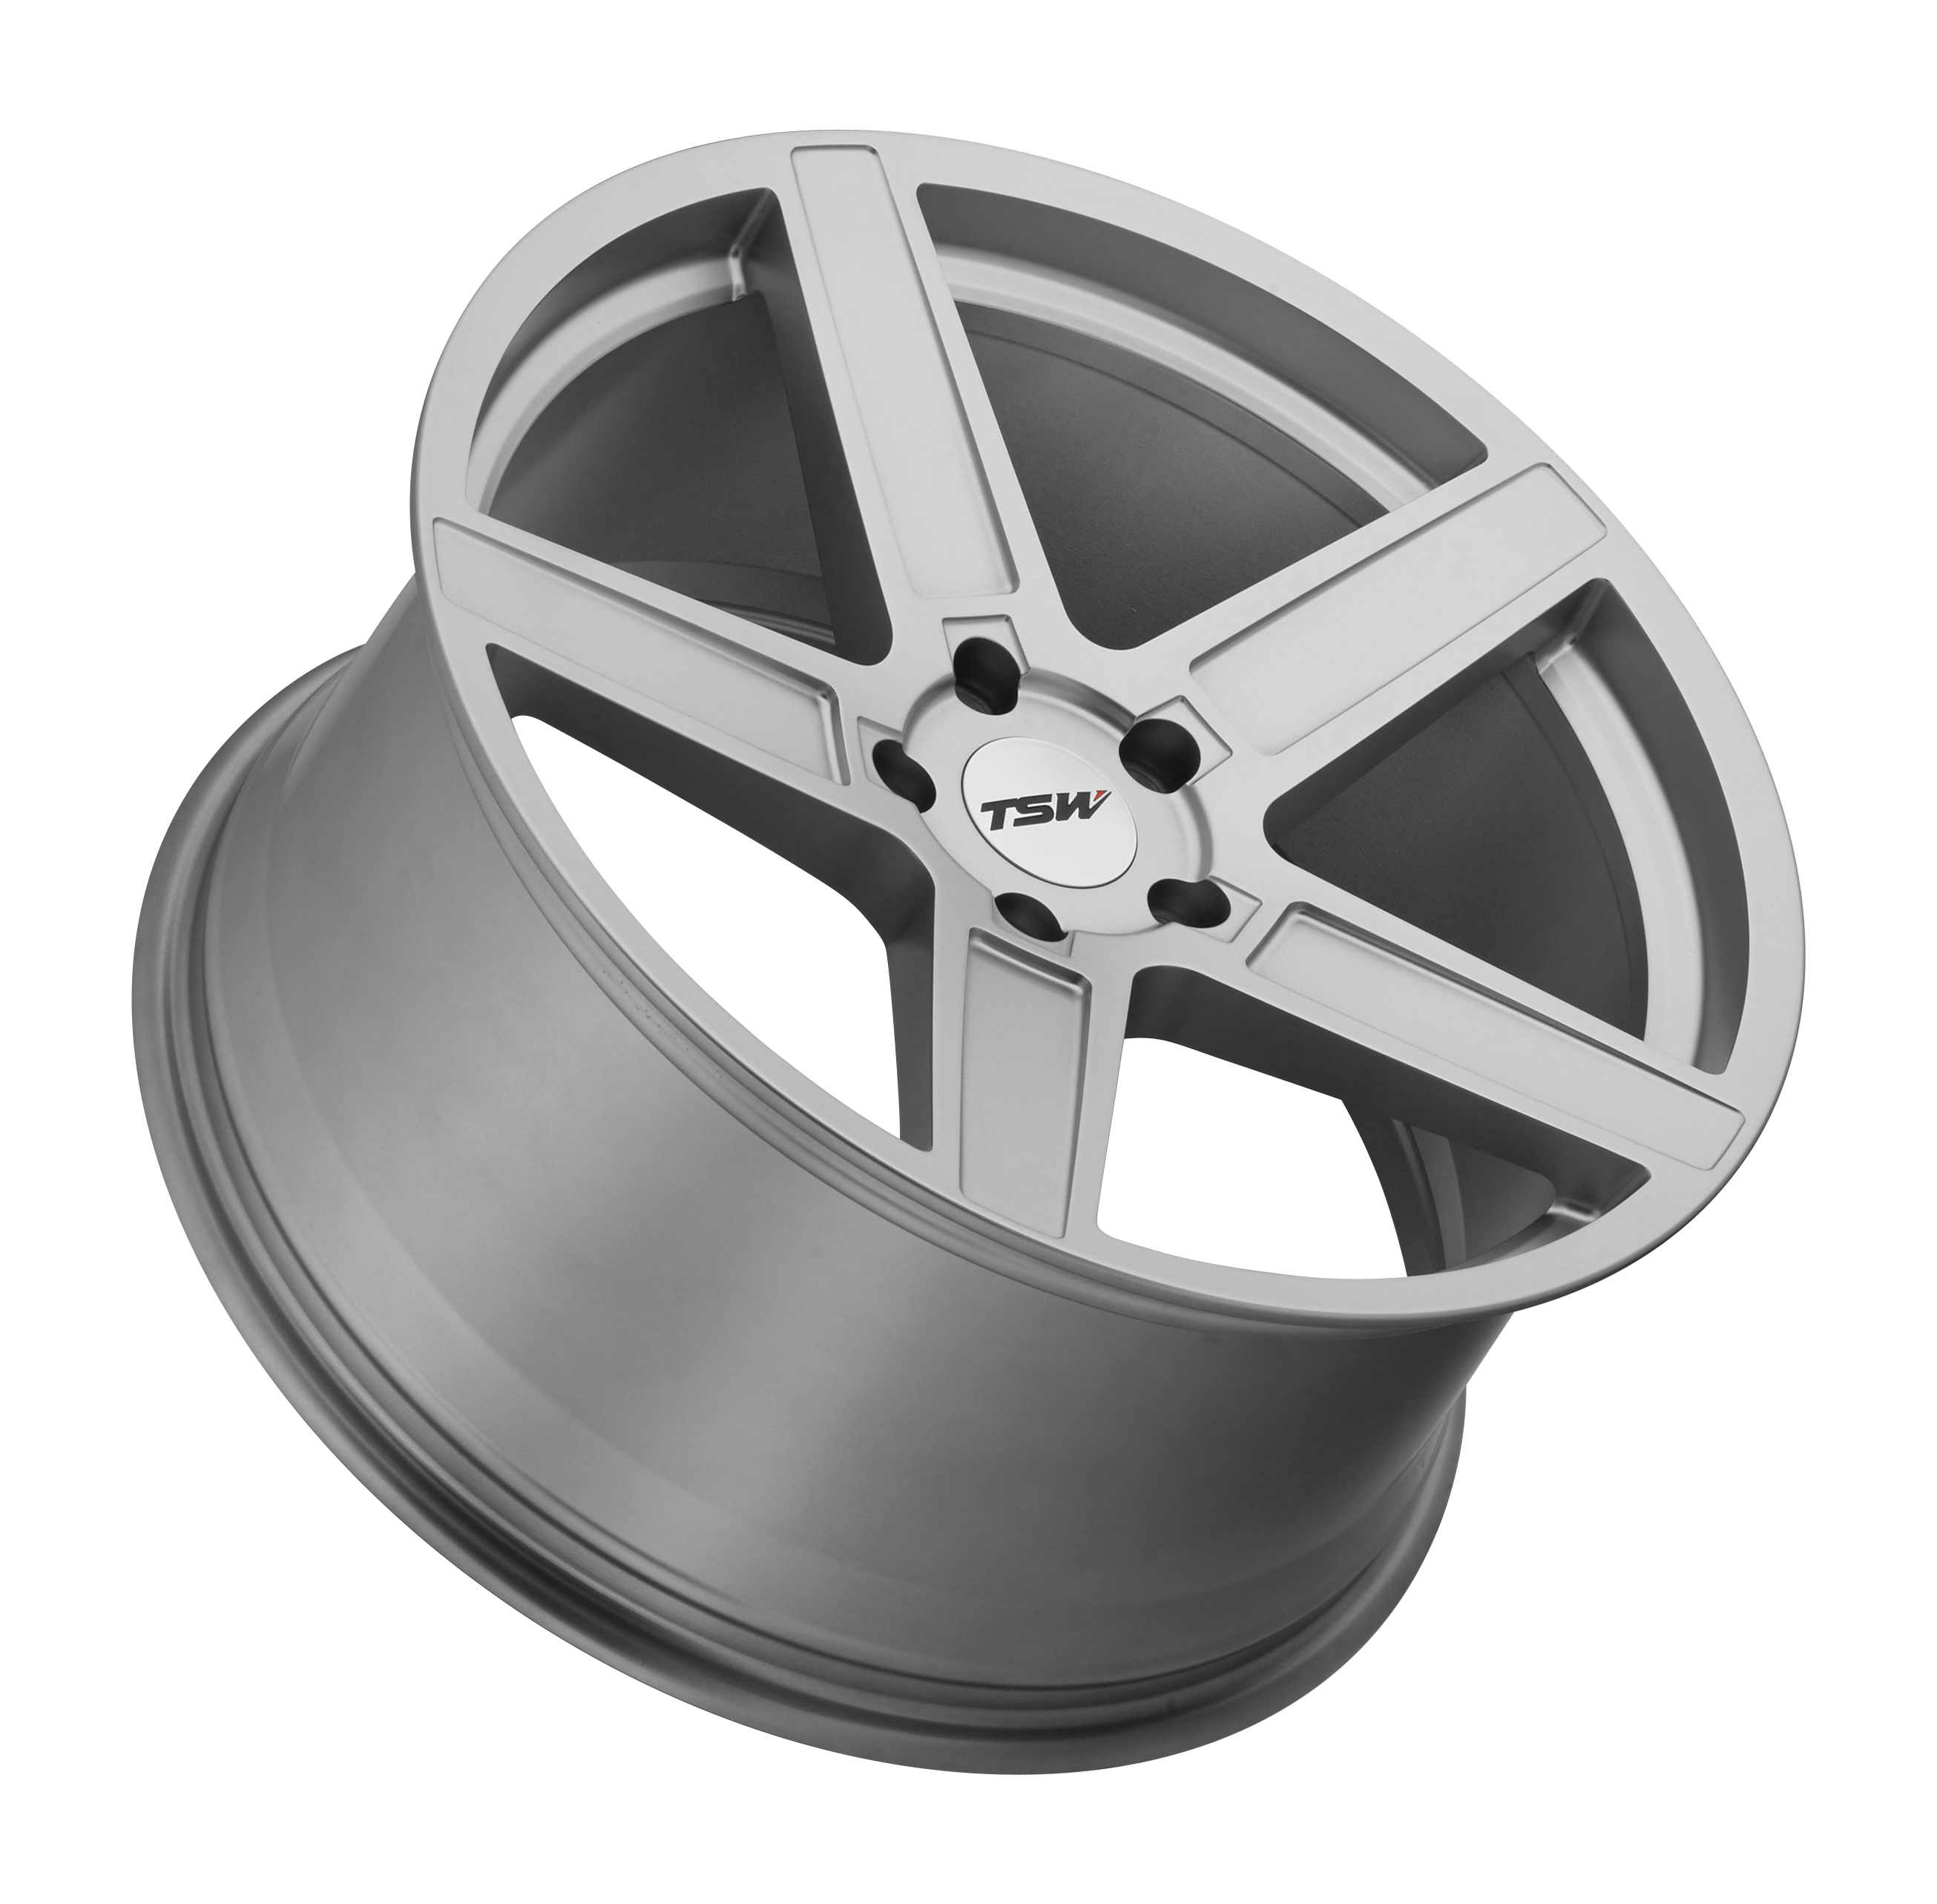 Tsw Introduces The Ascent Wheel A Distinctive New 5 Spoke Aluminum Alloy Design From Tsw Wheels